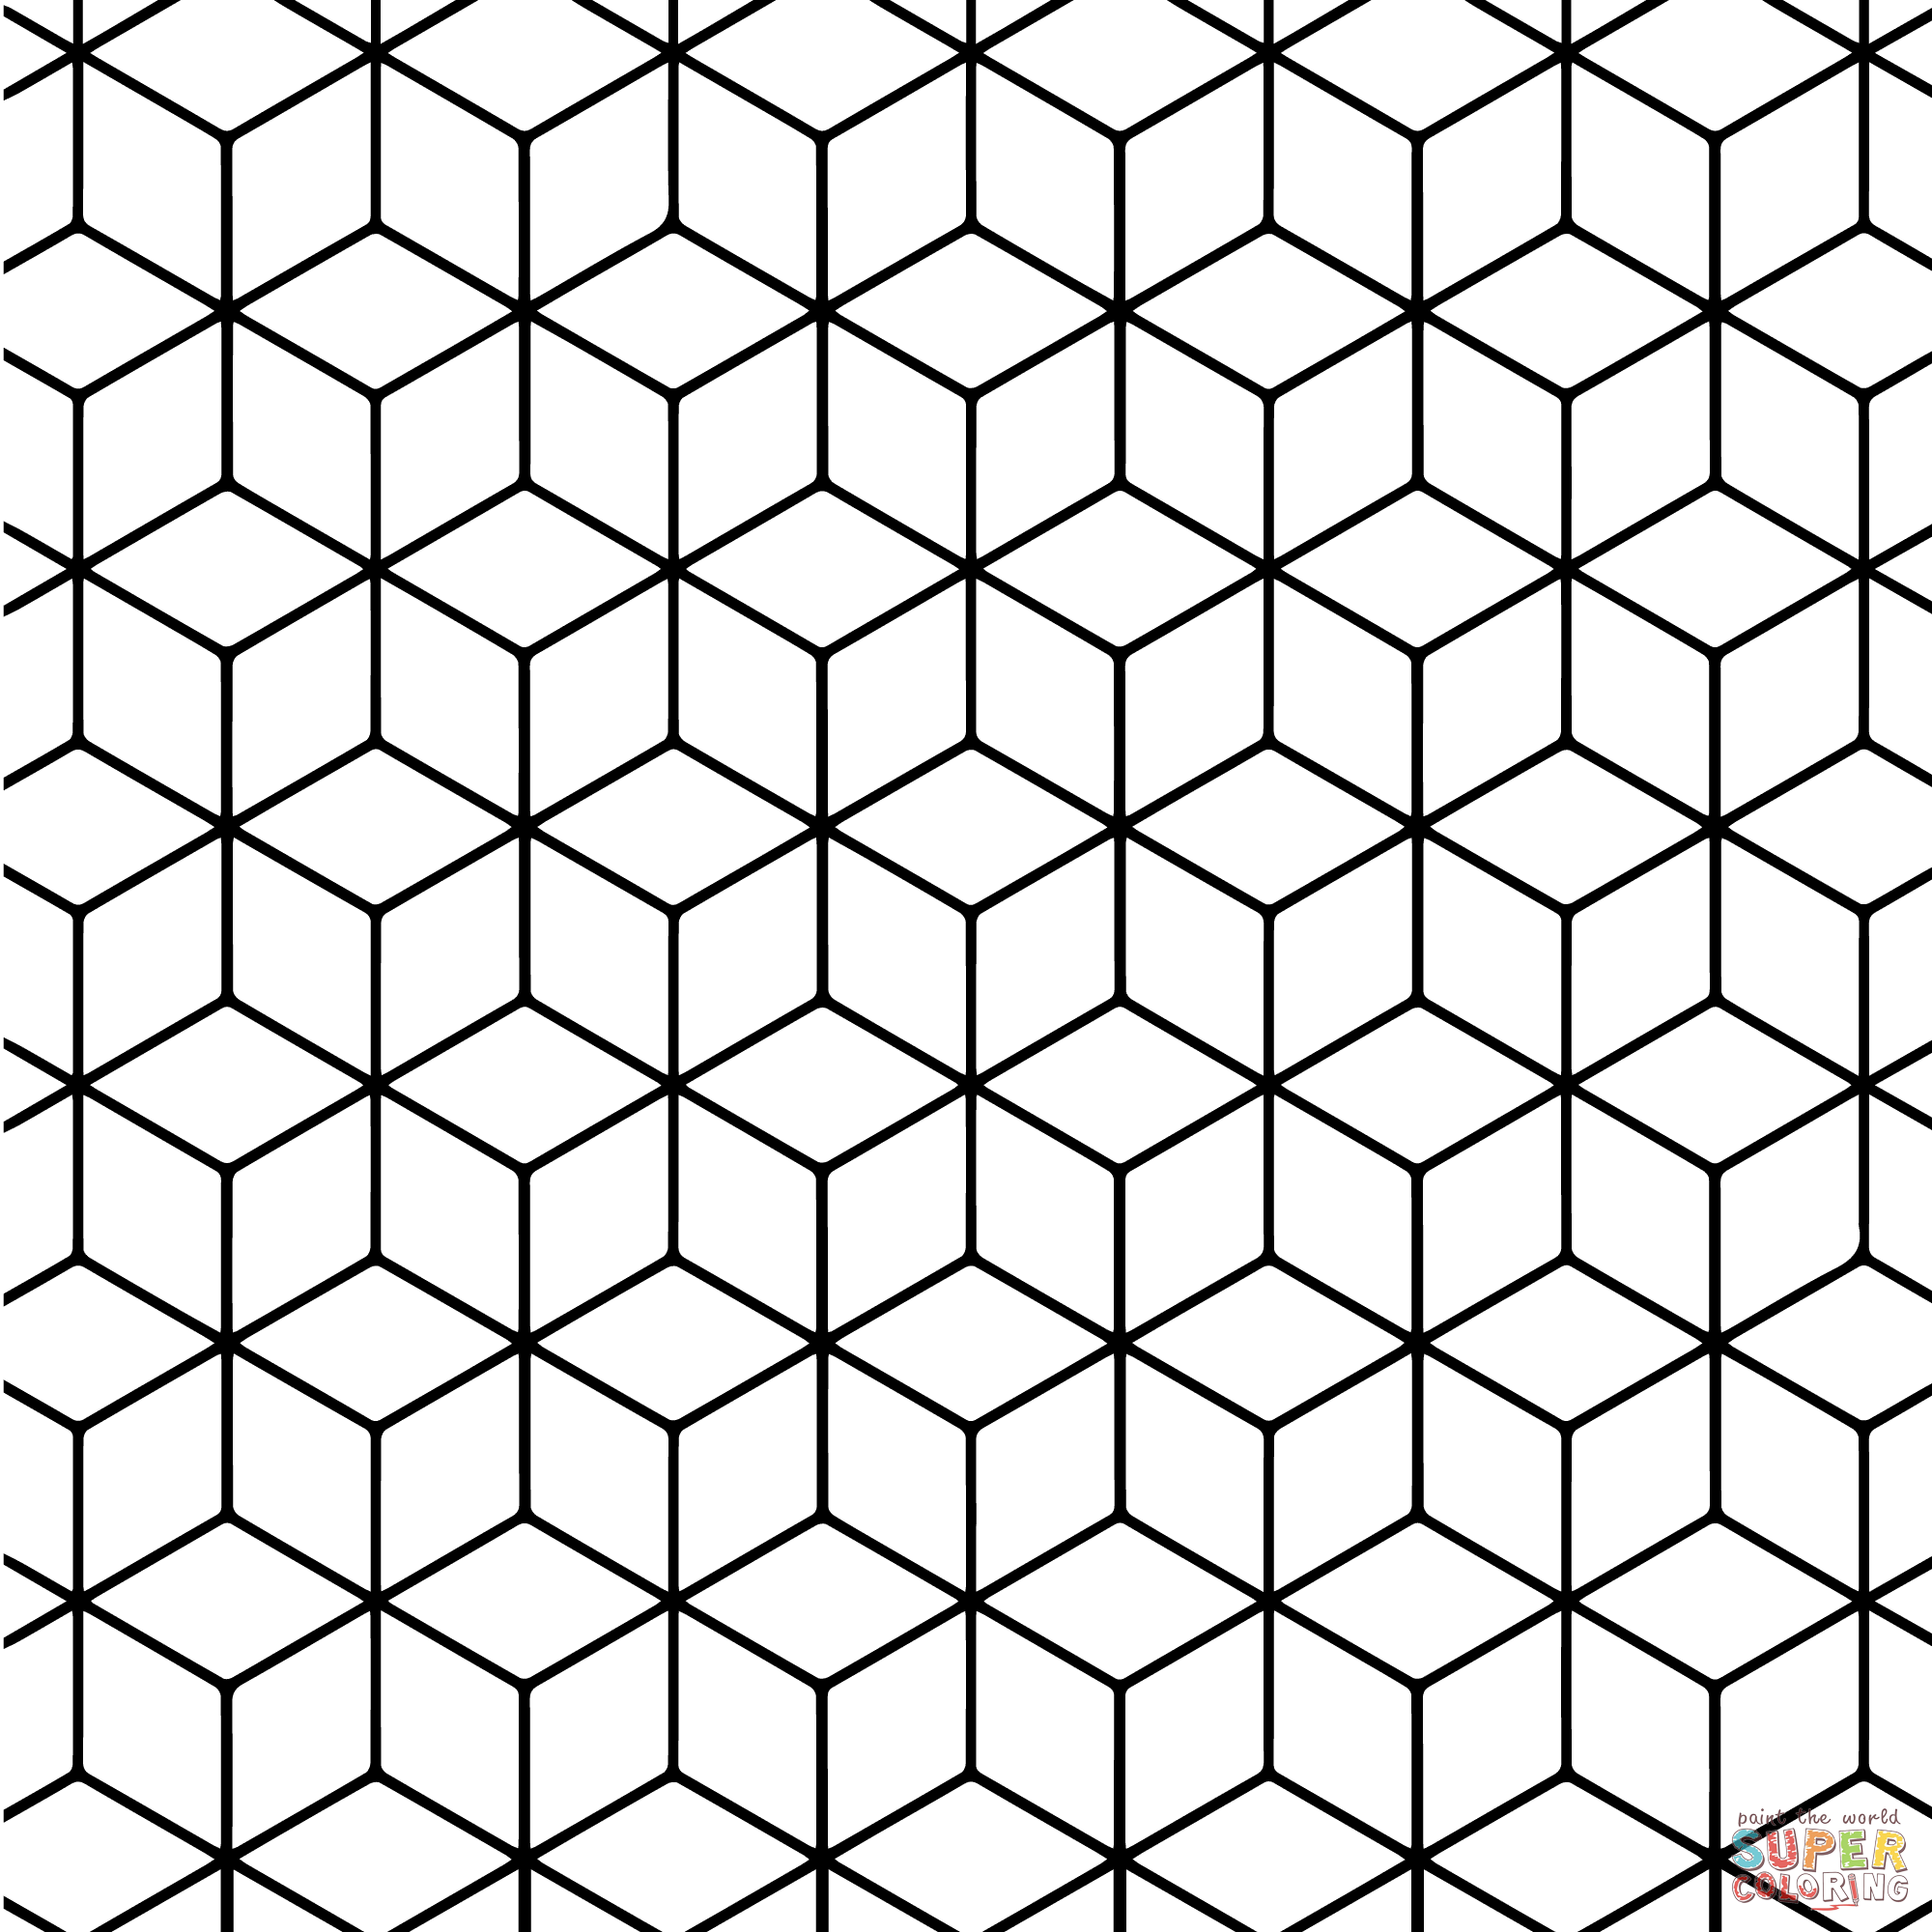 Printables Tessellation Worksheets To Color free tessellations coloring pages az geometric tessellation with rhombus pattern page free